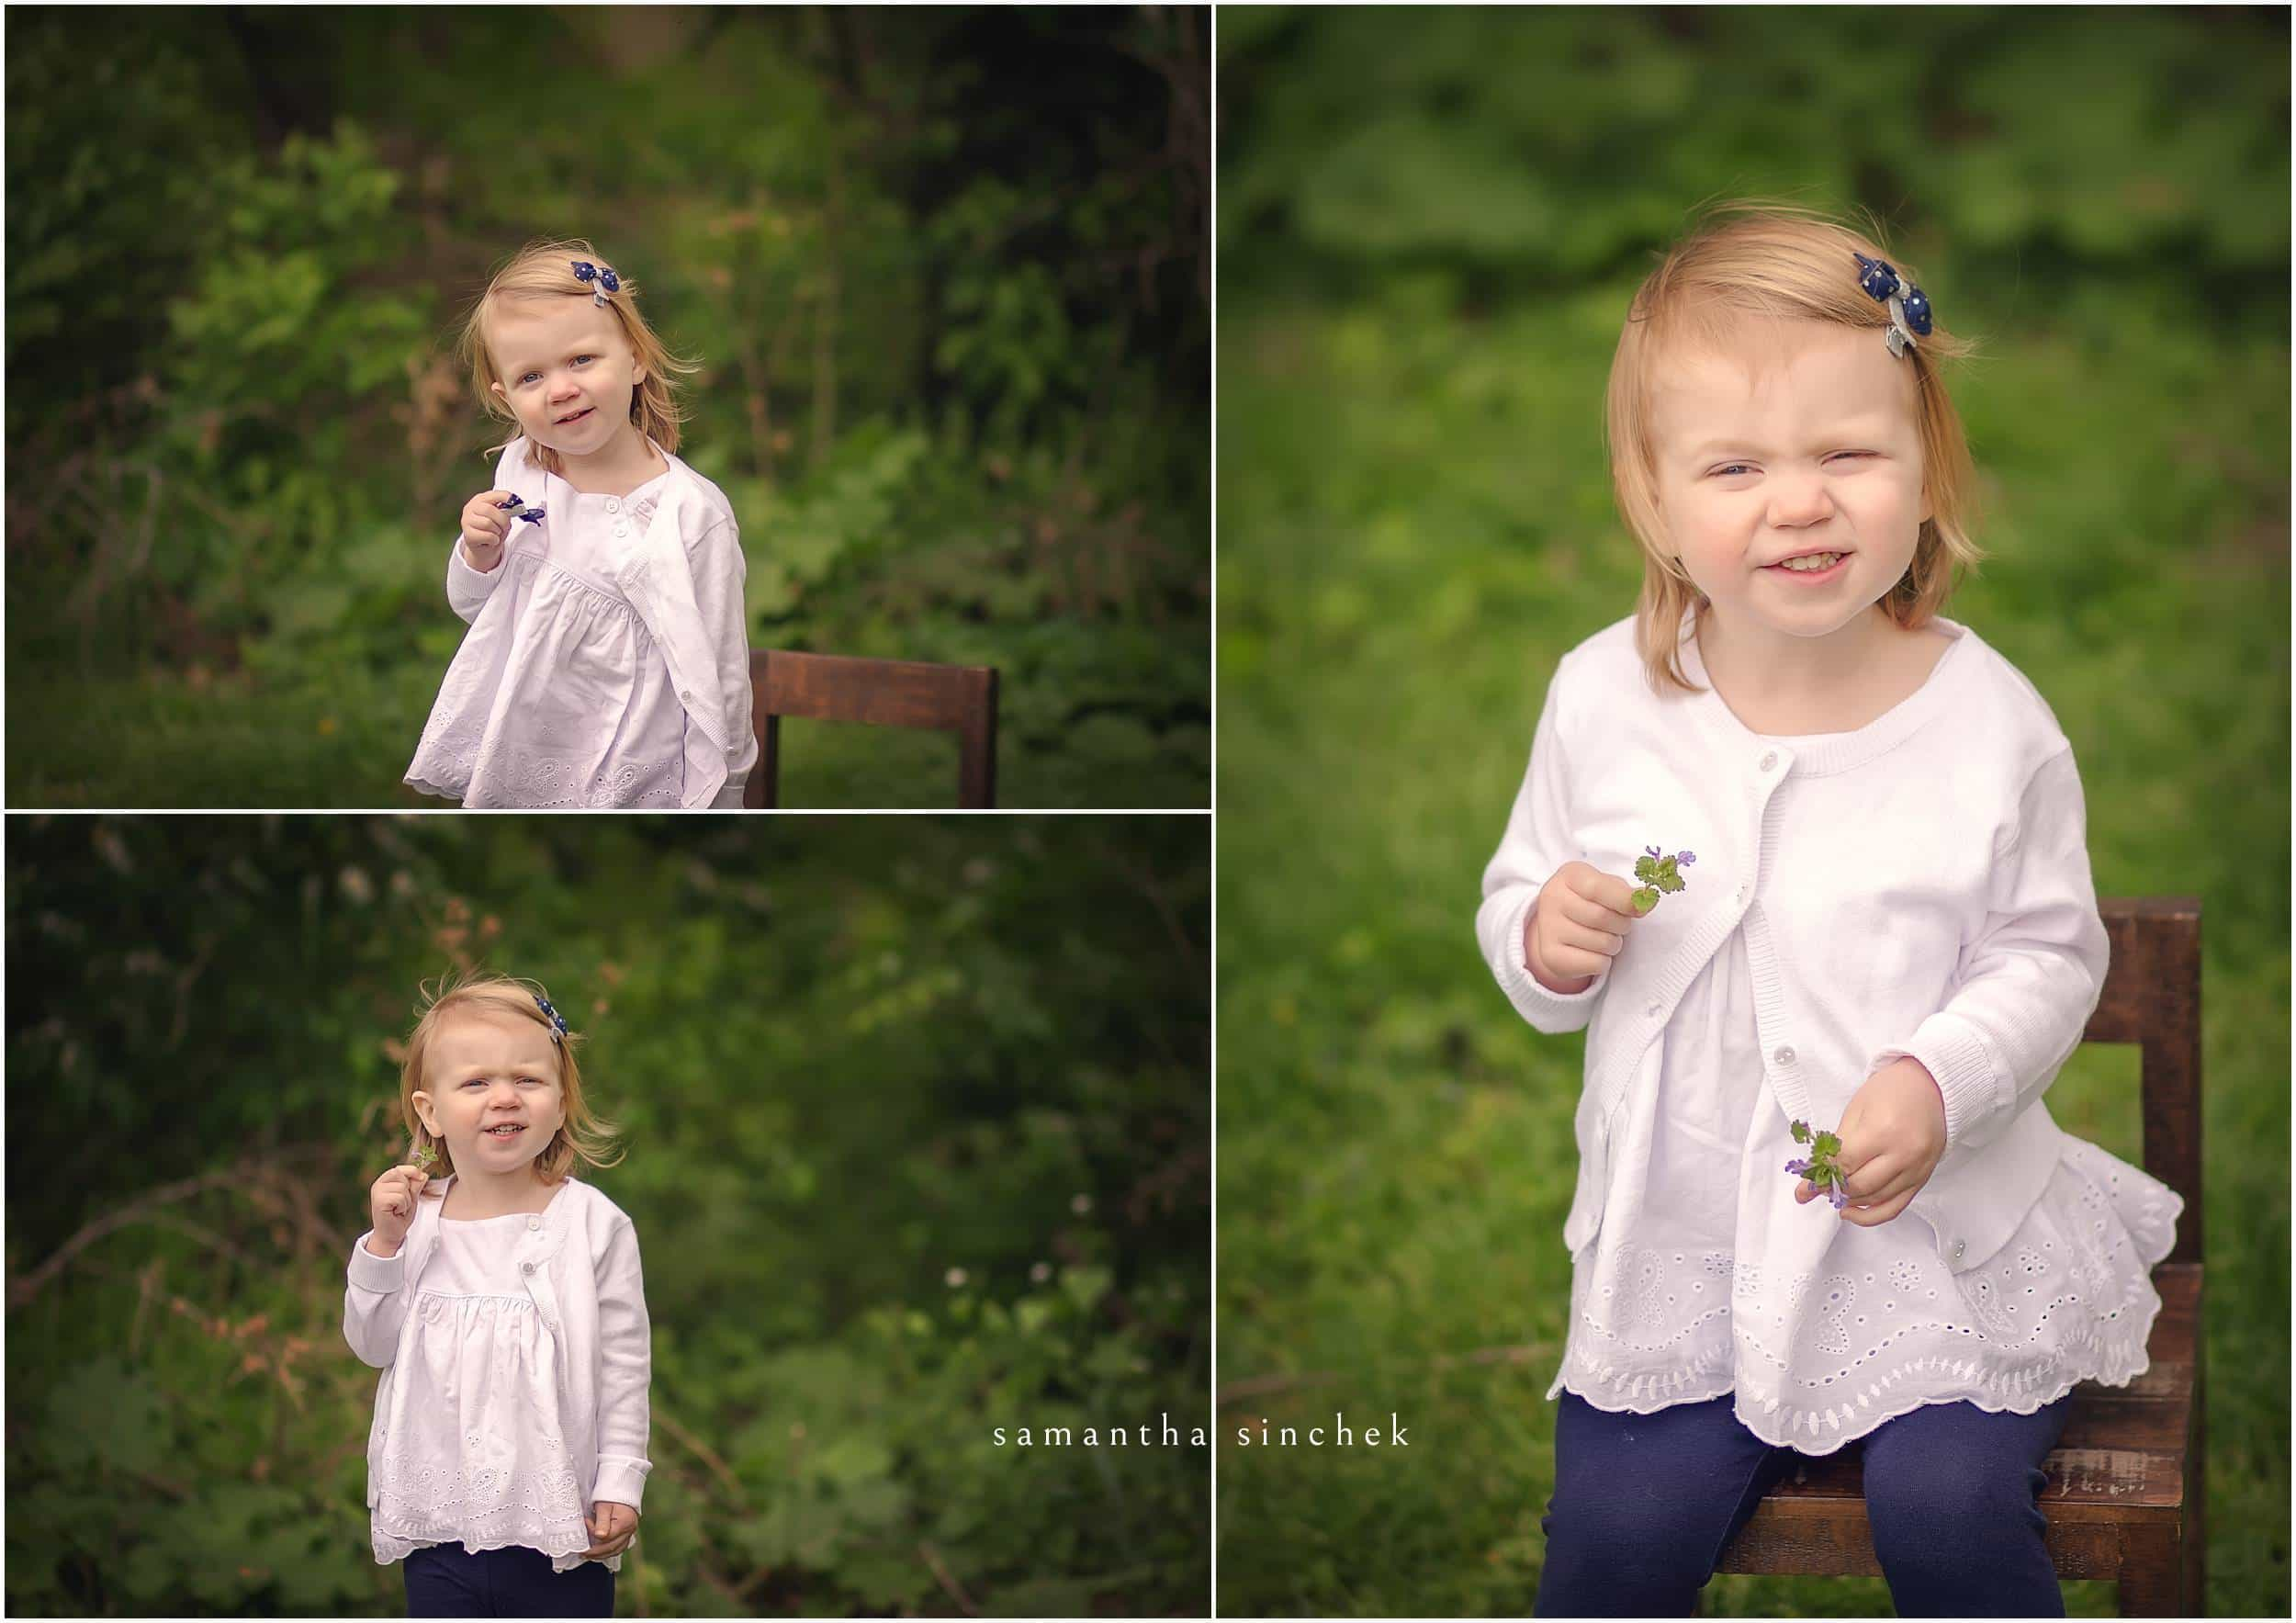 YOUNG DAUGHTER HOLDS A FLOWER AT CINCINNATI FAMILY SESSION